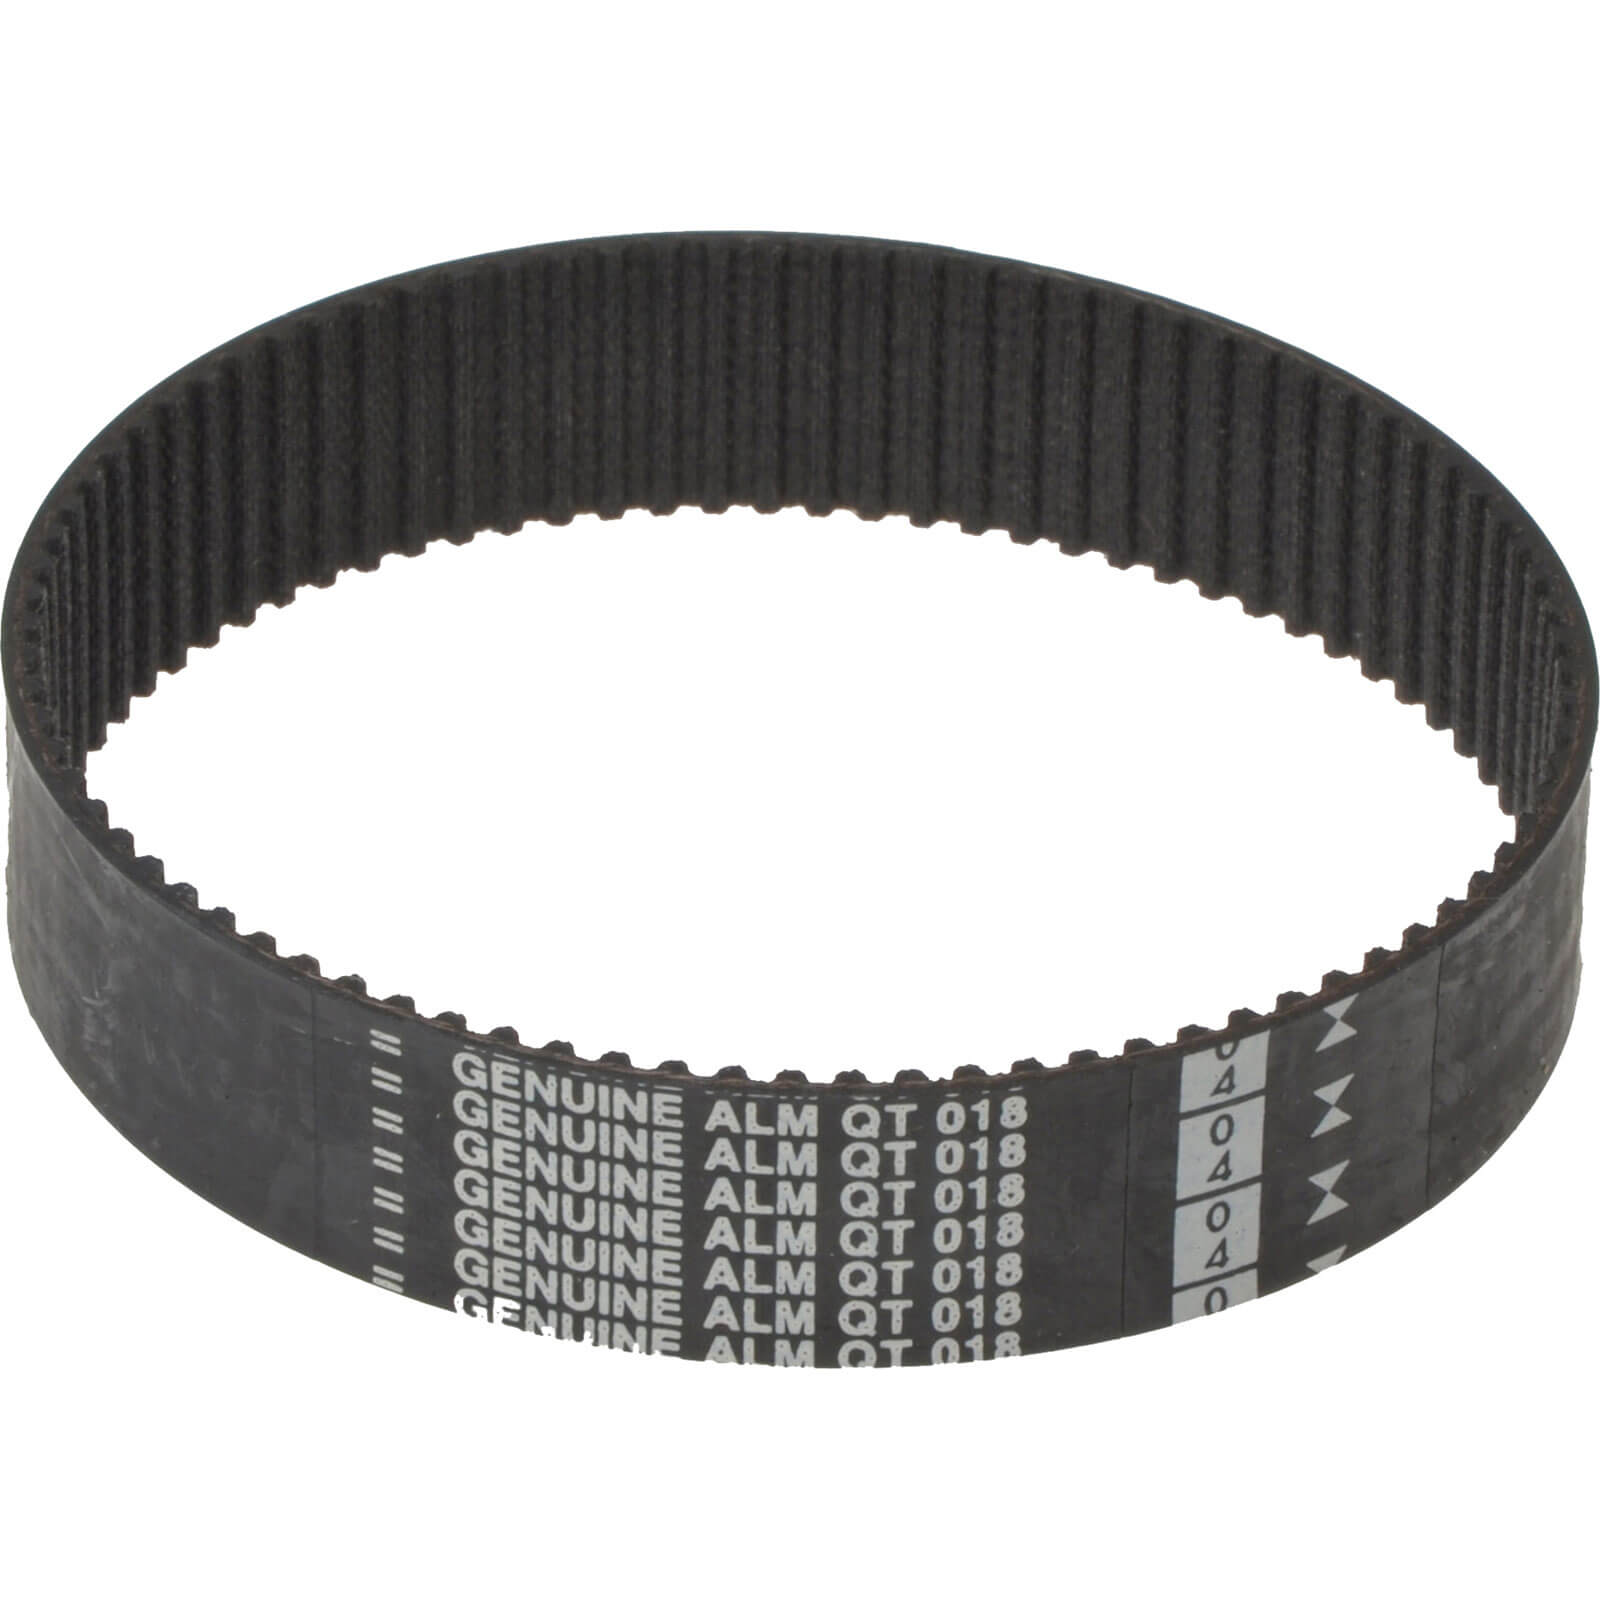 ALM Manufacturing QT018 Blade Belt to Fit Qualcast Quadtrack Lawnmowers